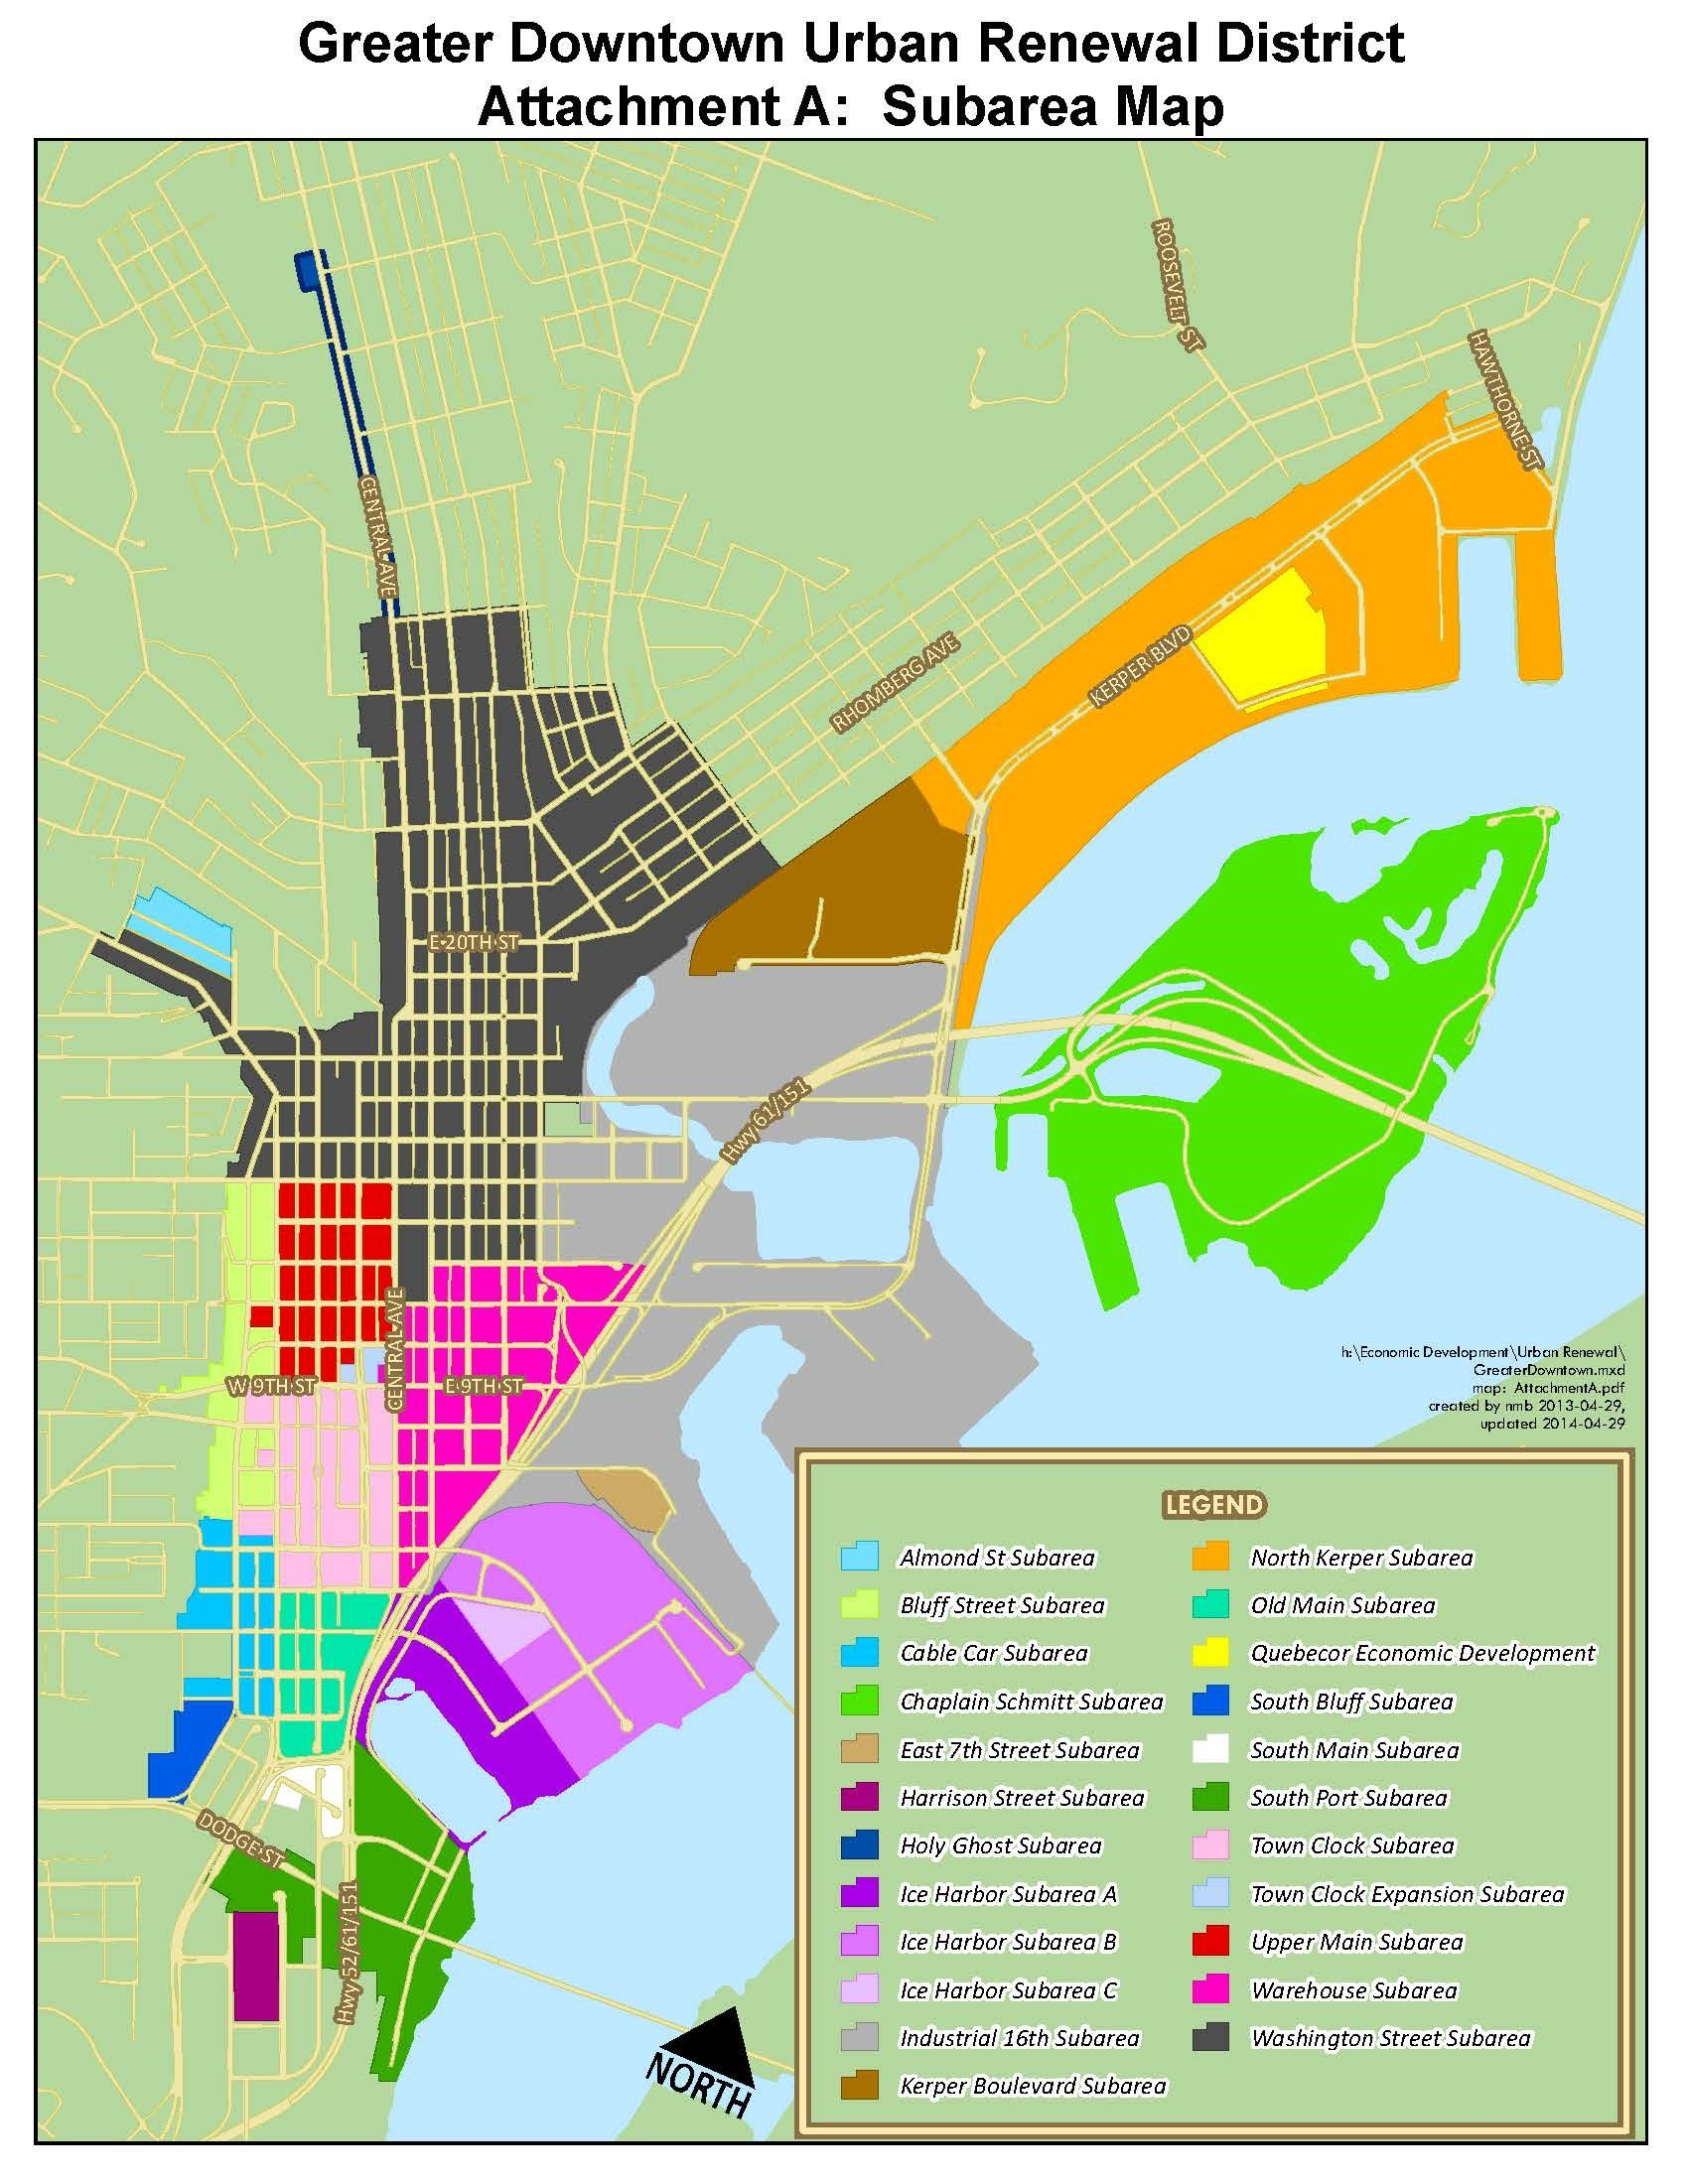 Downtown Urban Renewal District Subarea Map